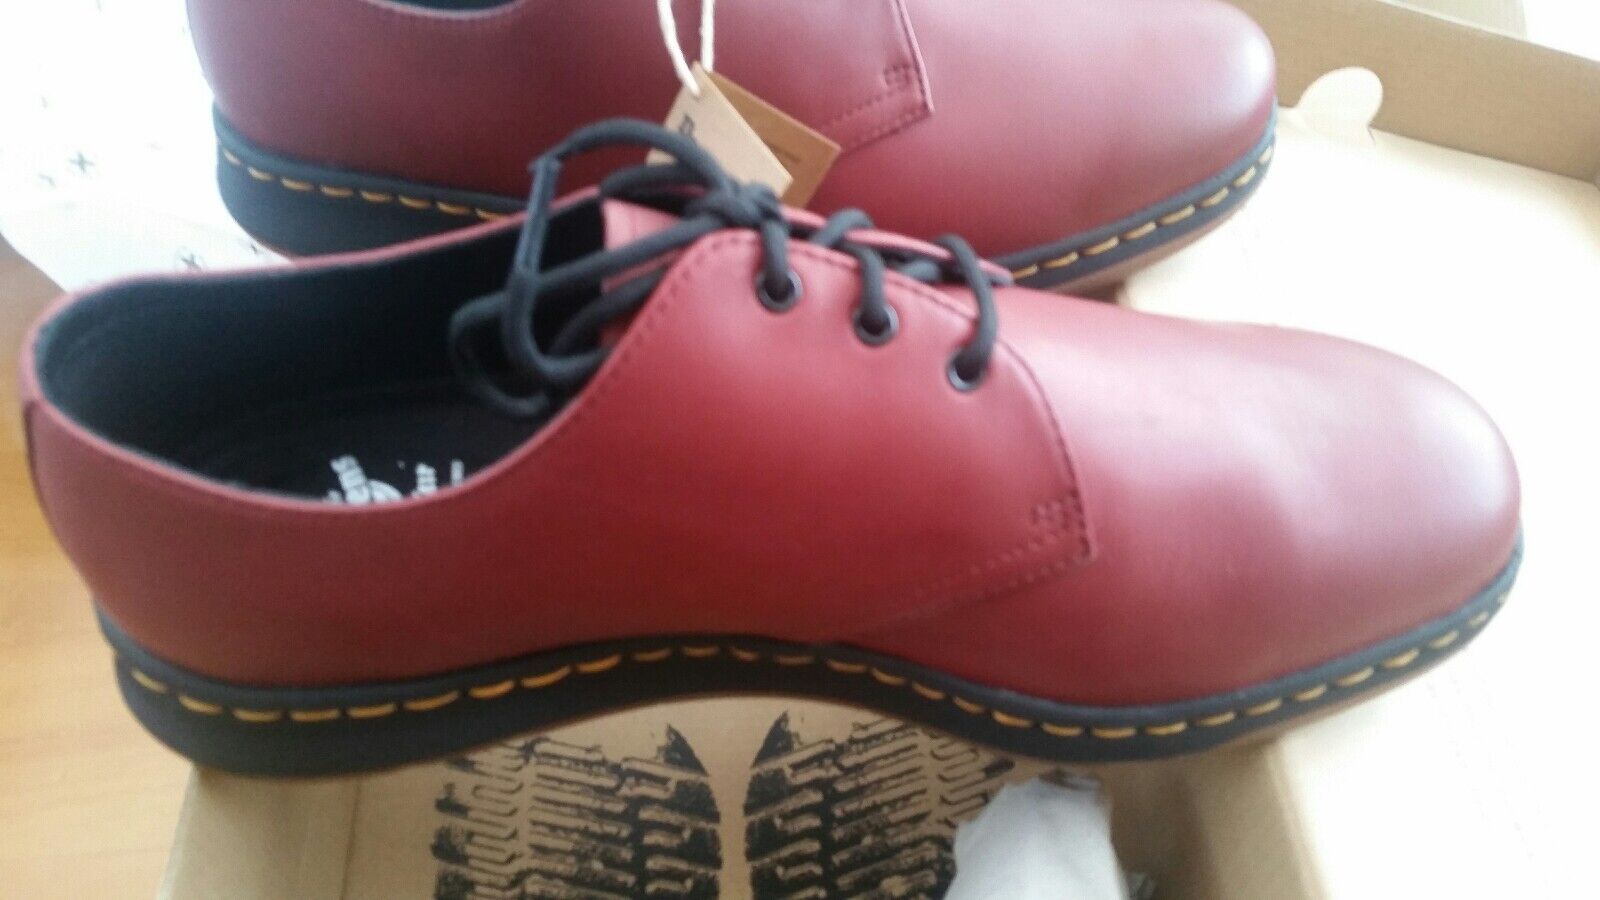 Dr Martens Lite Cavendish 21859600 Cherry Red Temperley shoes size 5